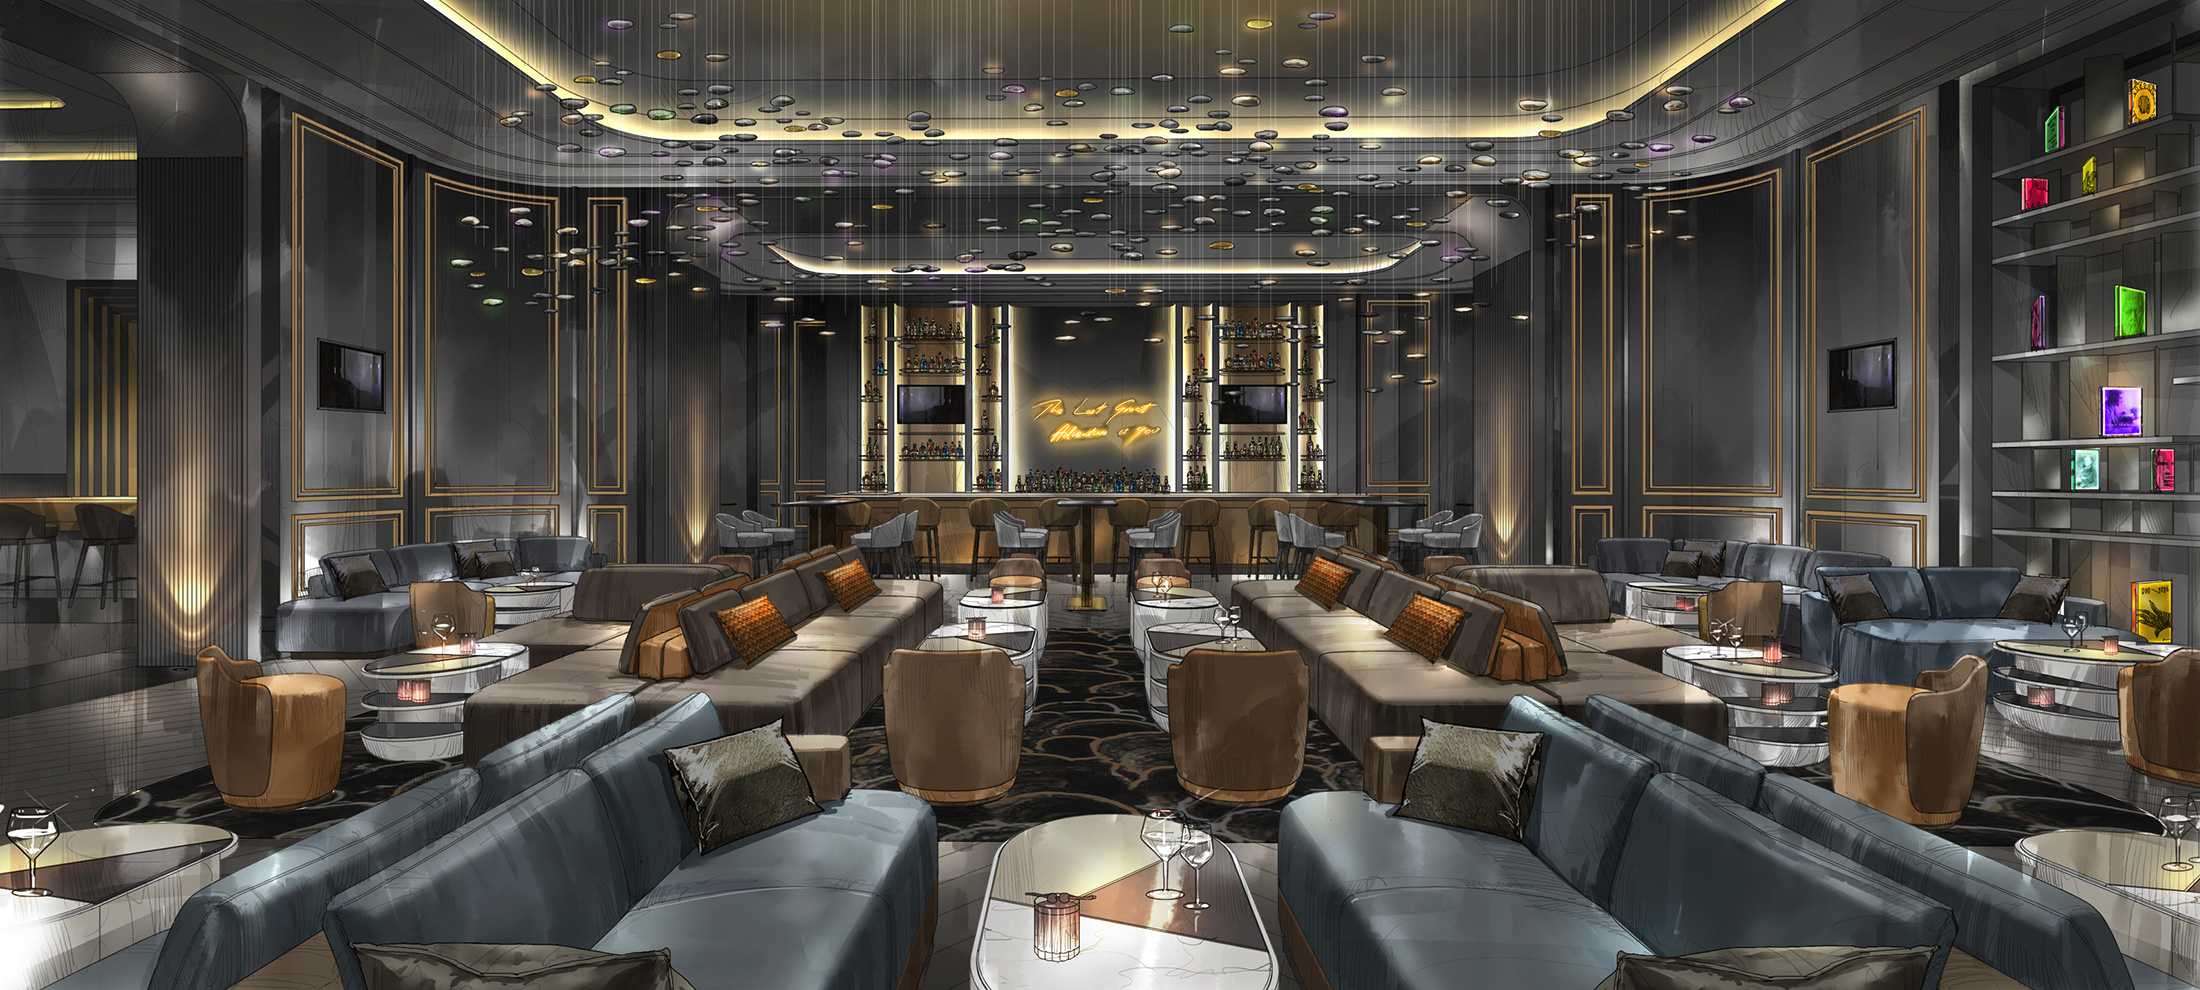 An engaging newcomer on the casino floor, the Bar Lounge & High Limit at the revitalized Palms Casino and Resort is a contemporary expression of the classic library lounge.